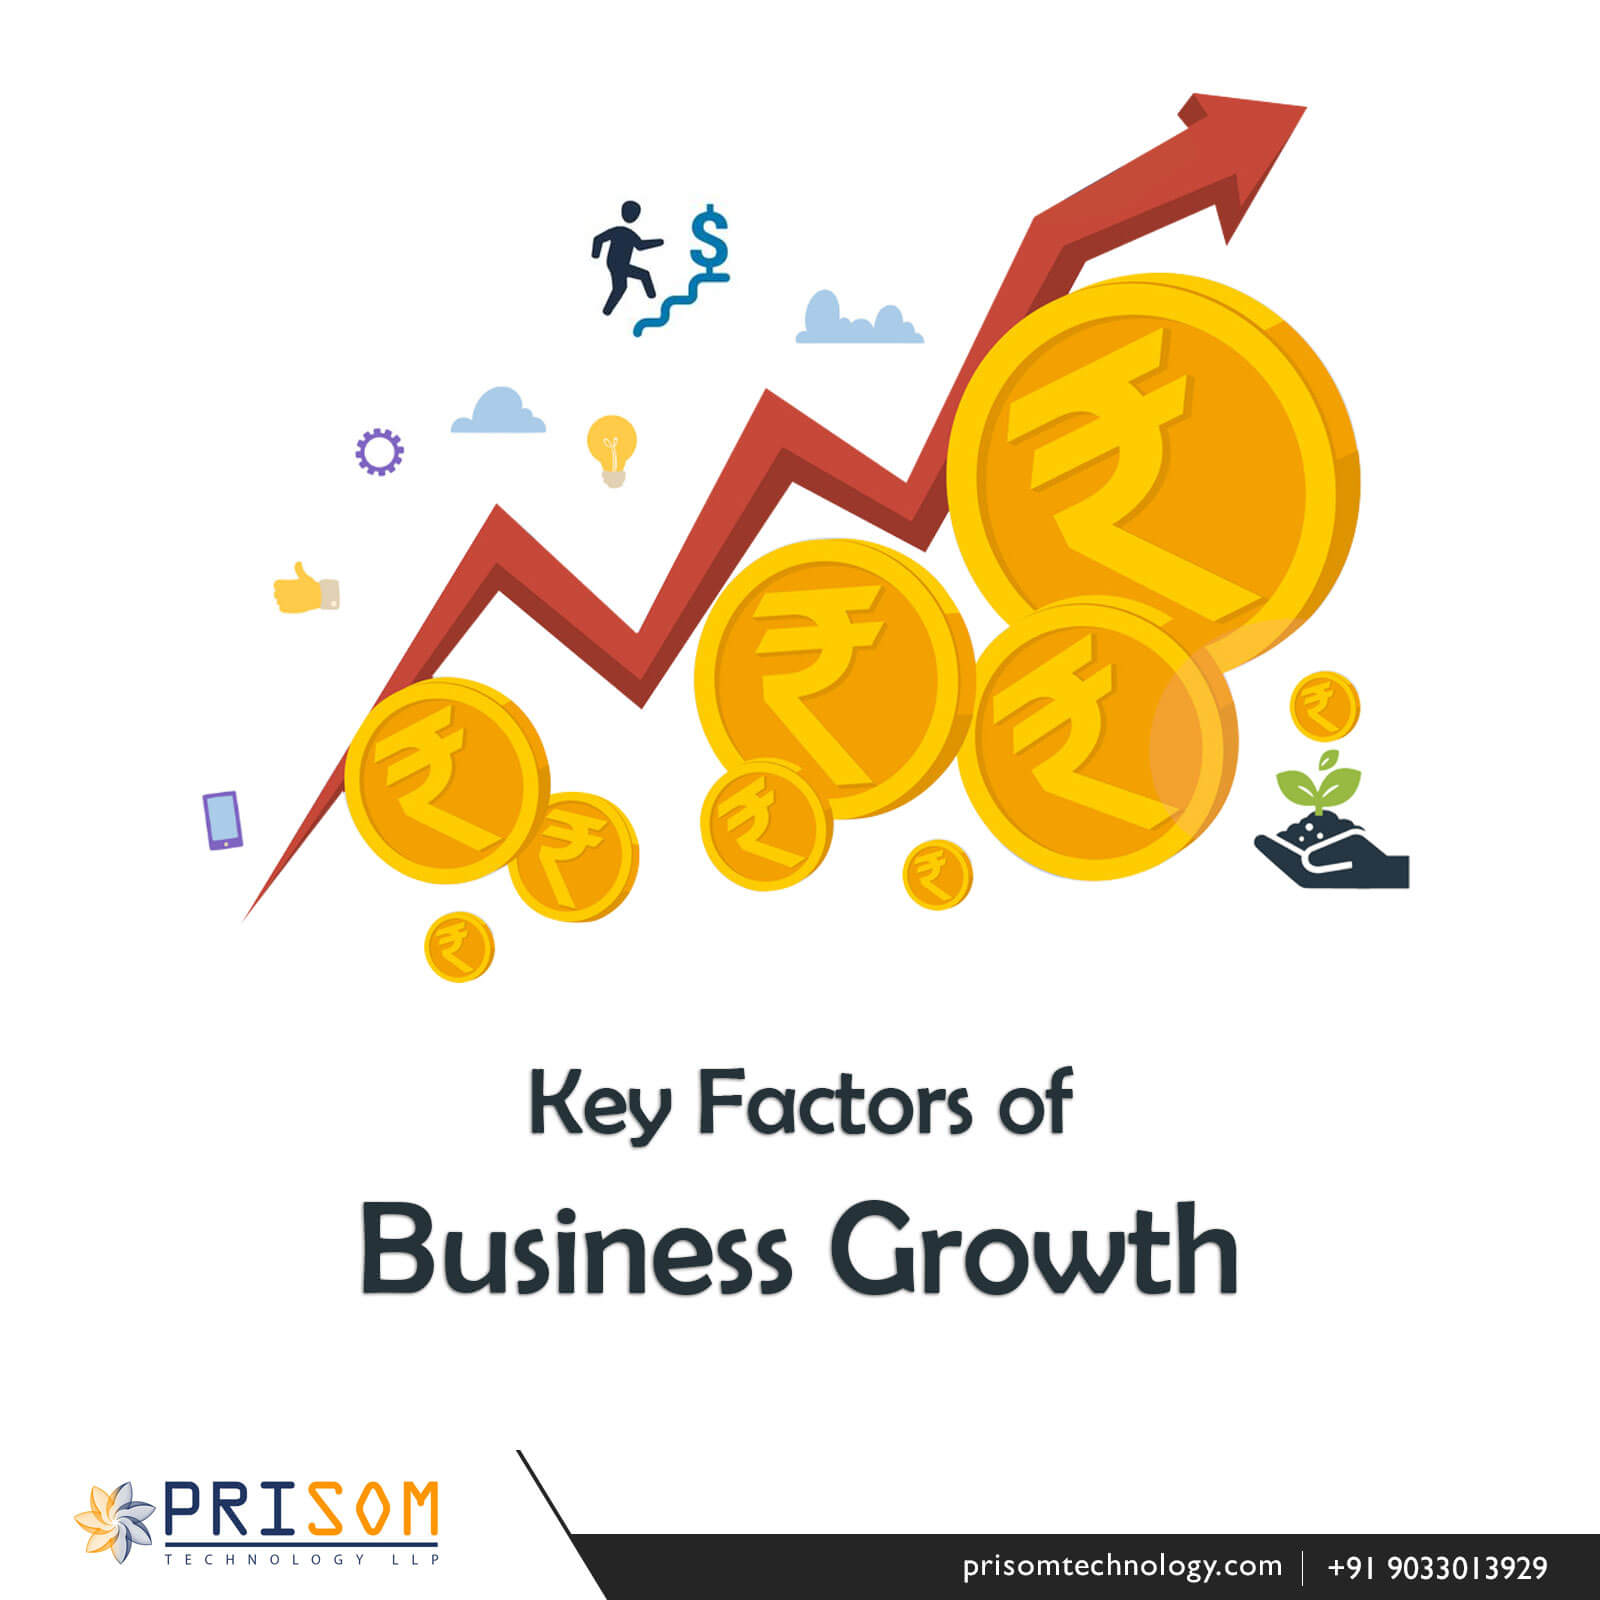 Key Factors of Business Growth